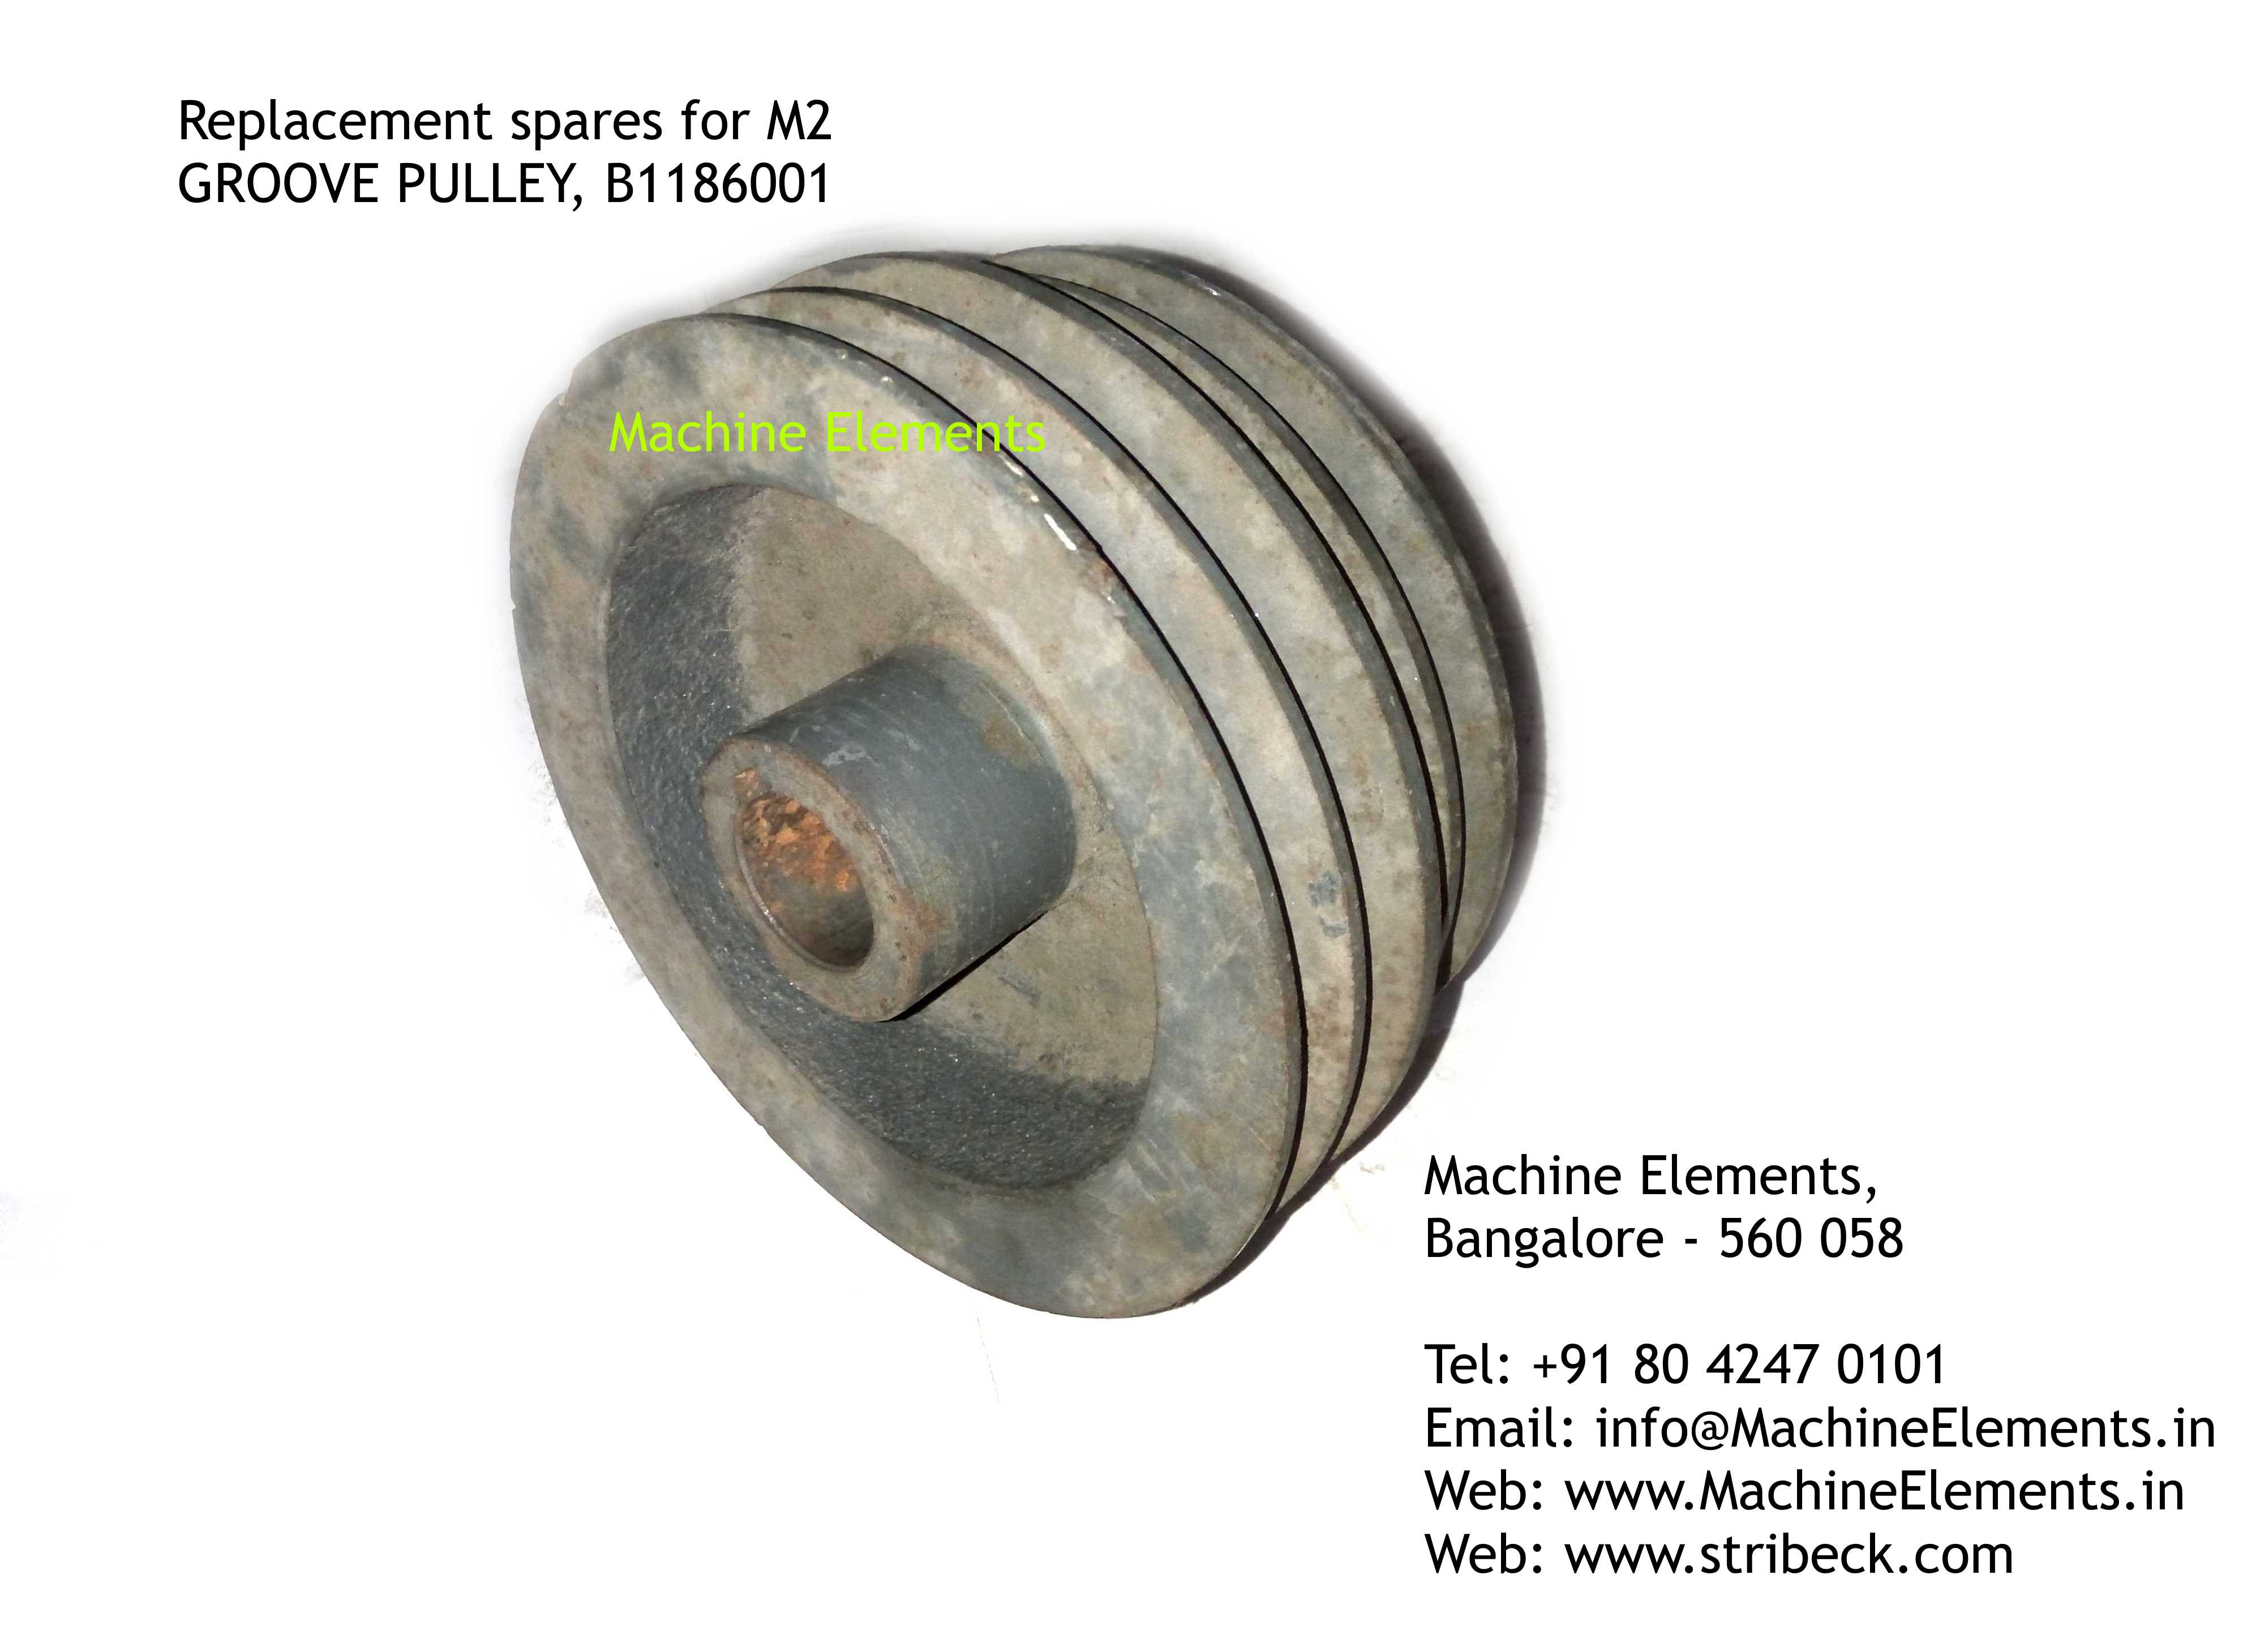 GROOVE PULLEY, B1186001